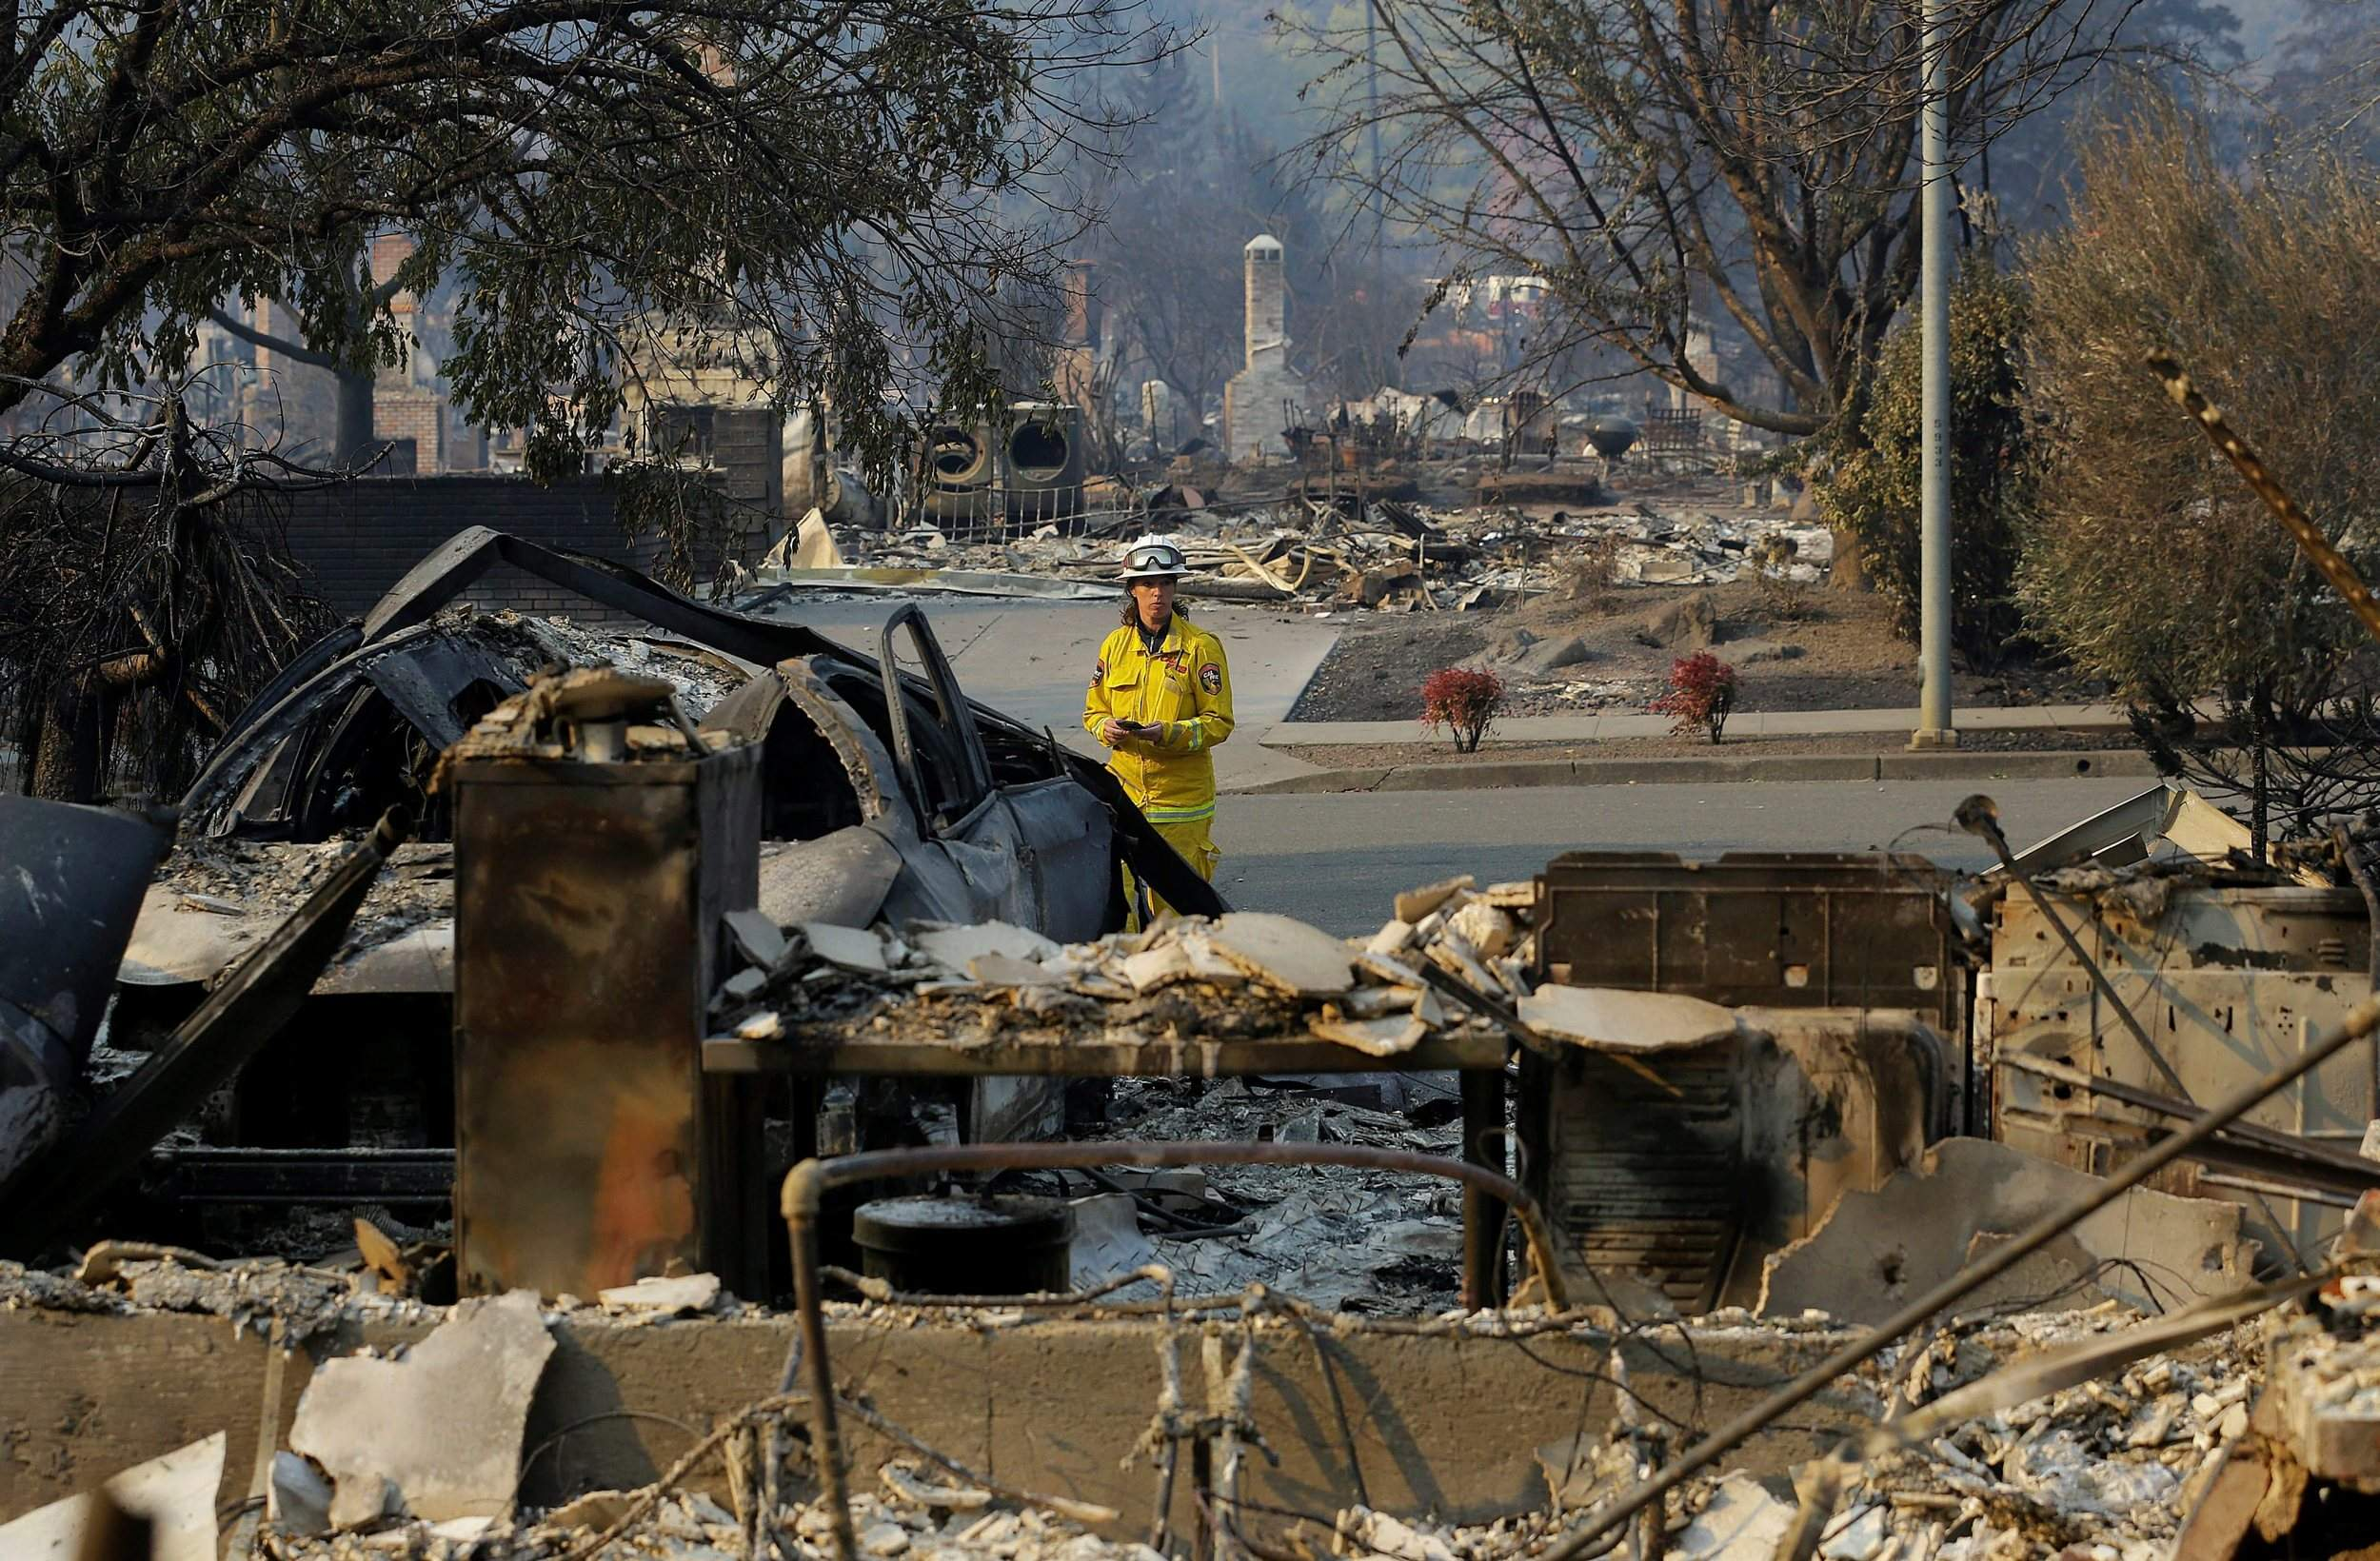 cal fire forester kim sone inspects damage at homes destroyed by fires in santa rosa calif on thursday gusting winds and dry air forecast for thursday